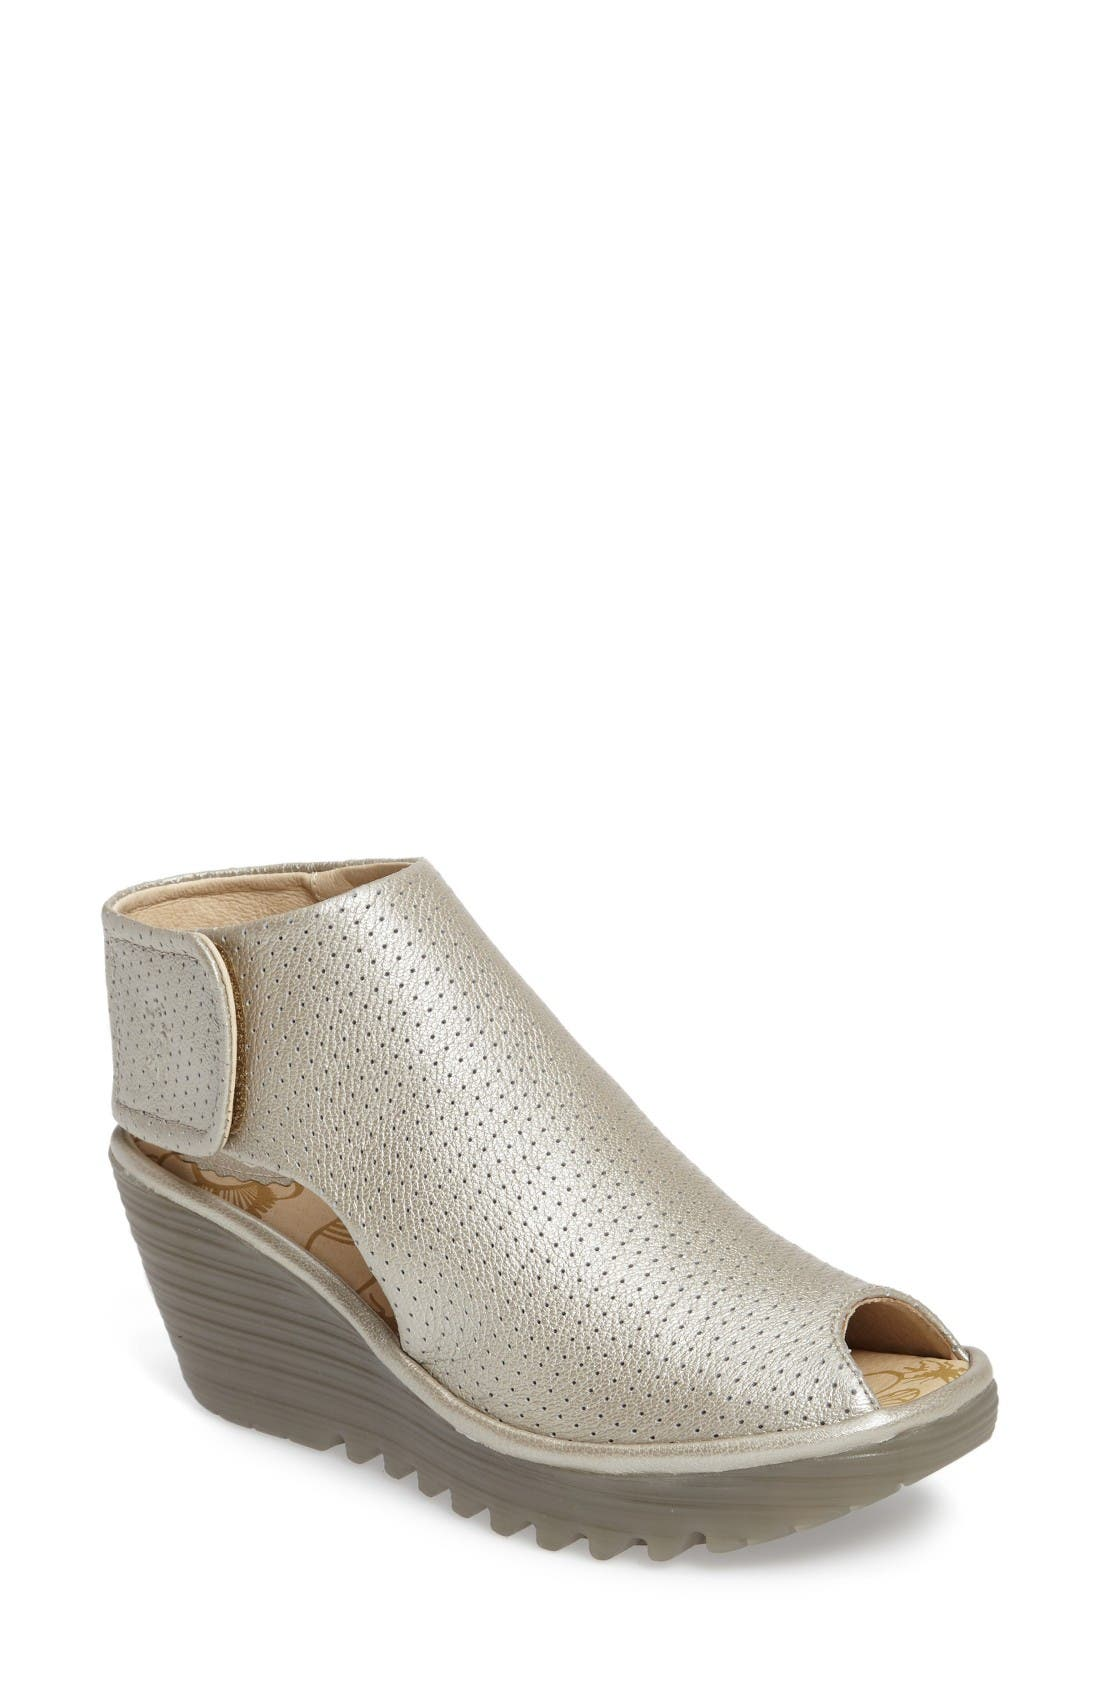 Alternate Image 1 Selected - Fly London Yahl Open Toe Platform Wedge (Women)